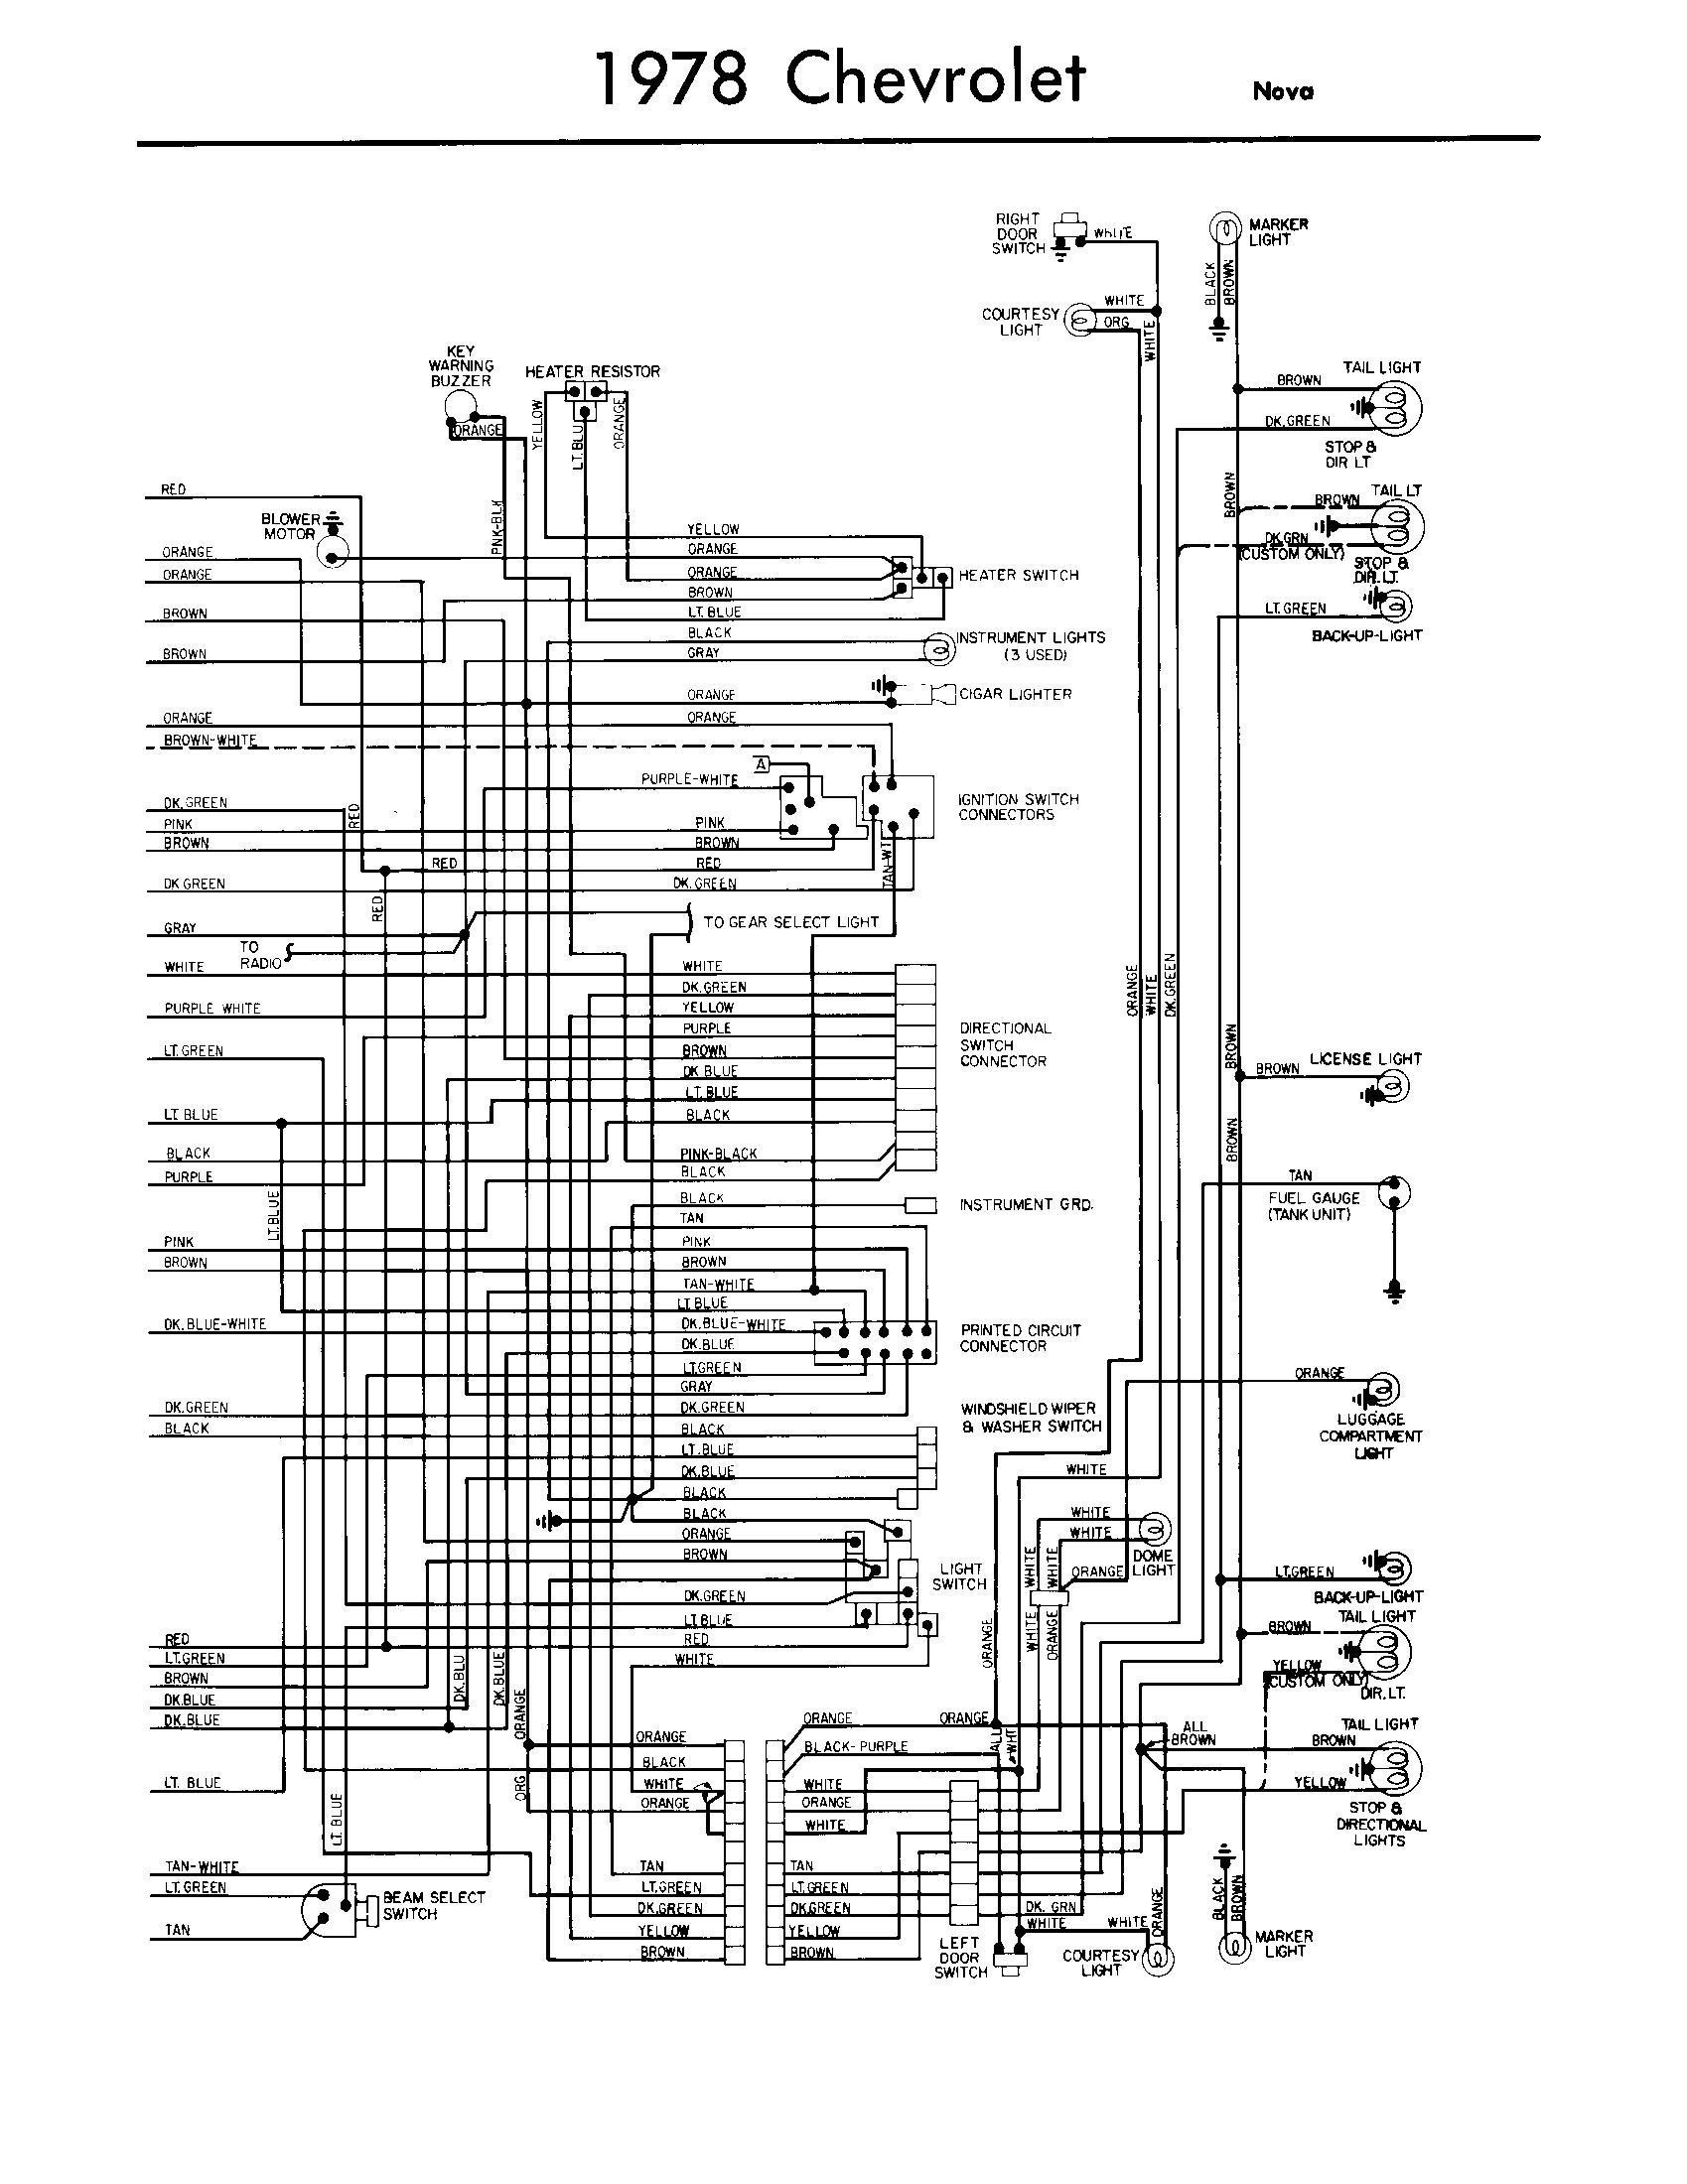 hight resolution of 78 gm stereo wiring diagrams wiring diagram third level 1978 corvette 25th anniversary 1978 corvette stereo wiring diagram